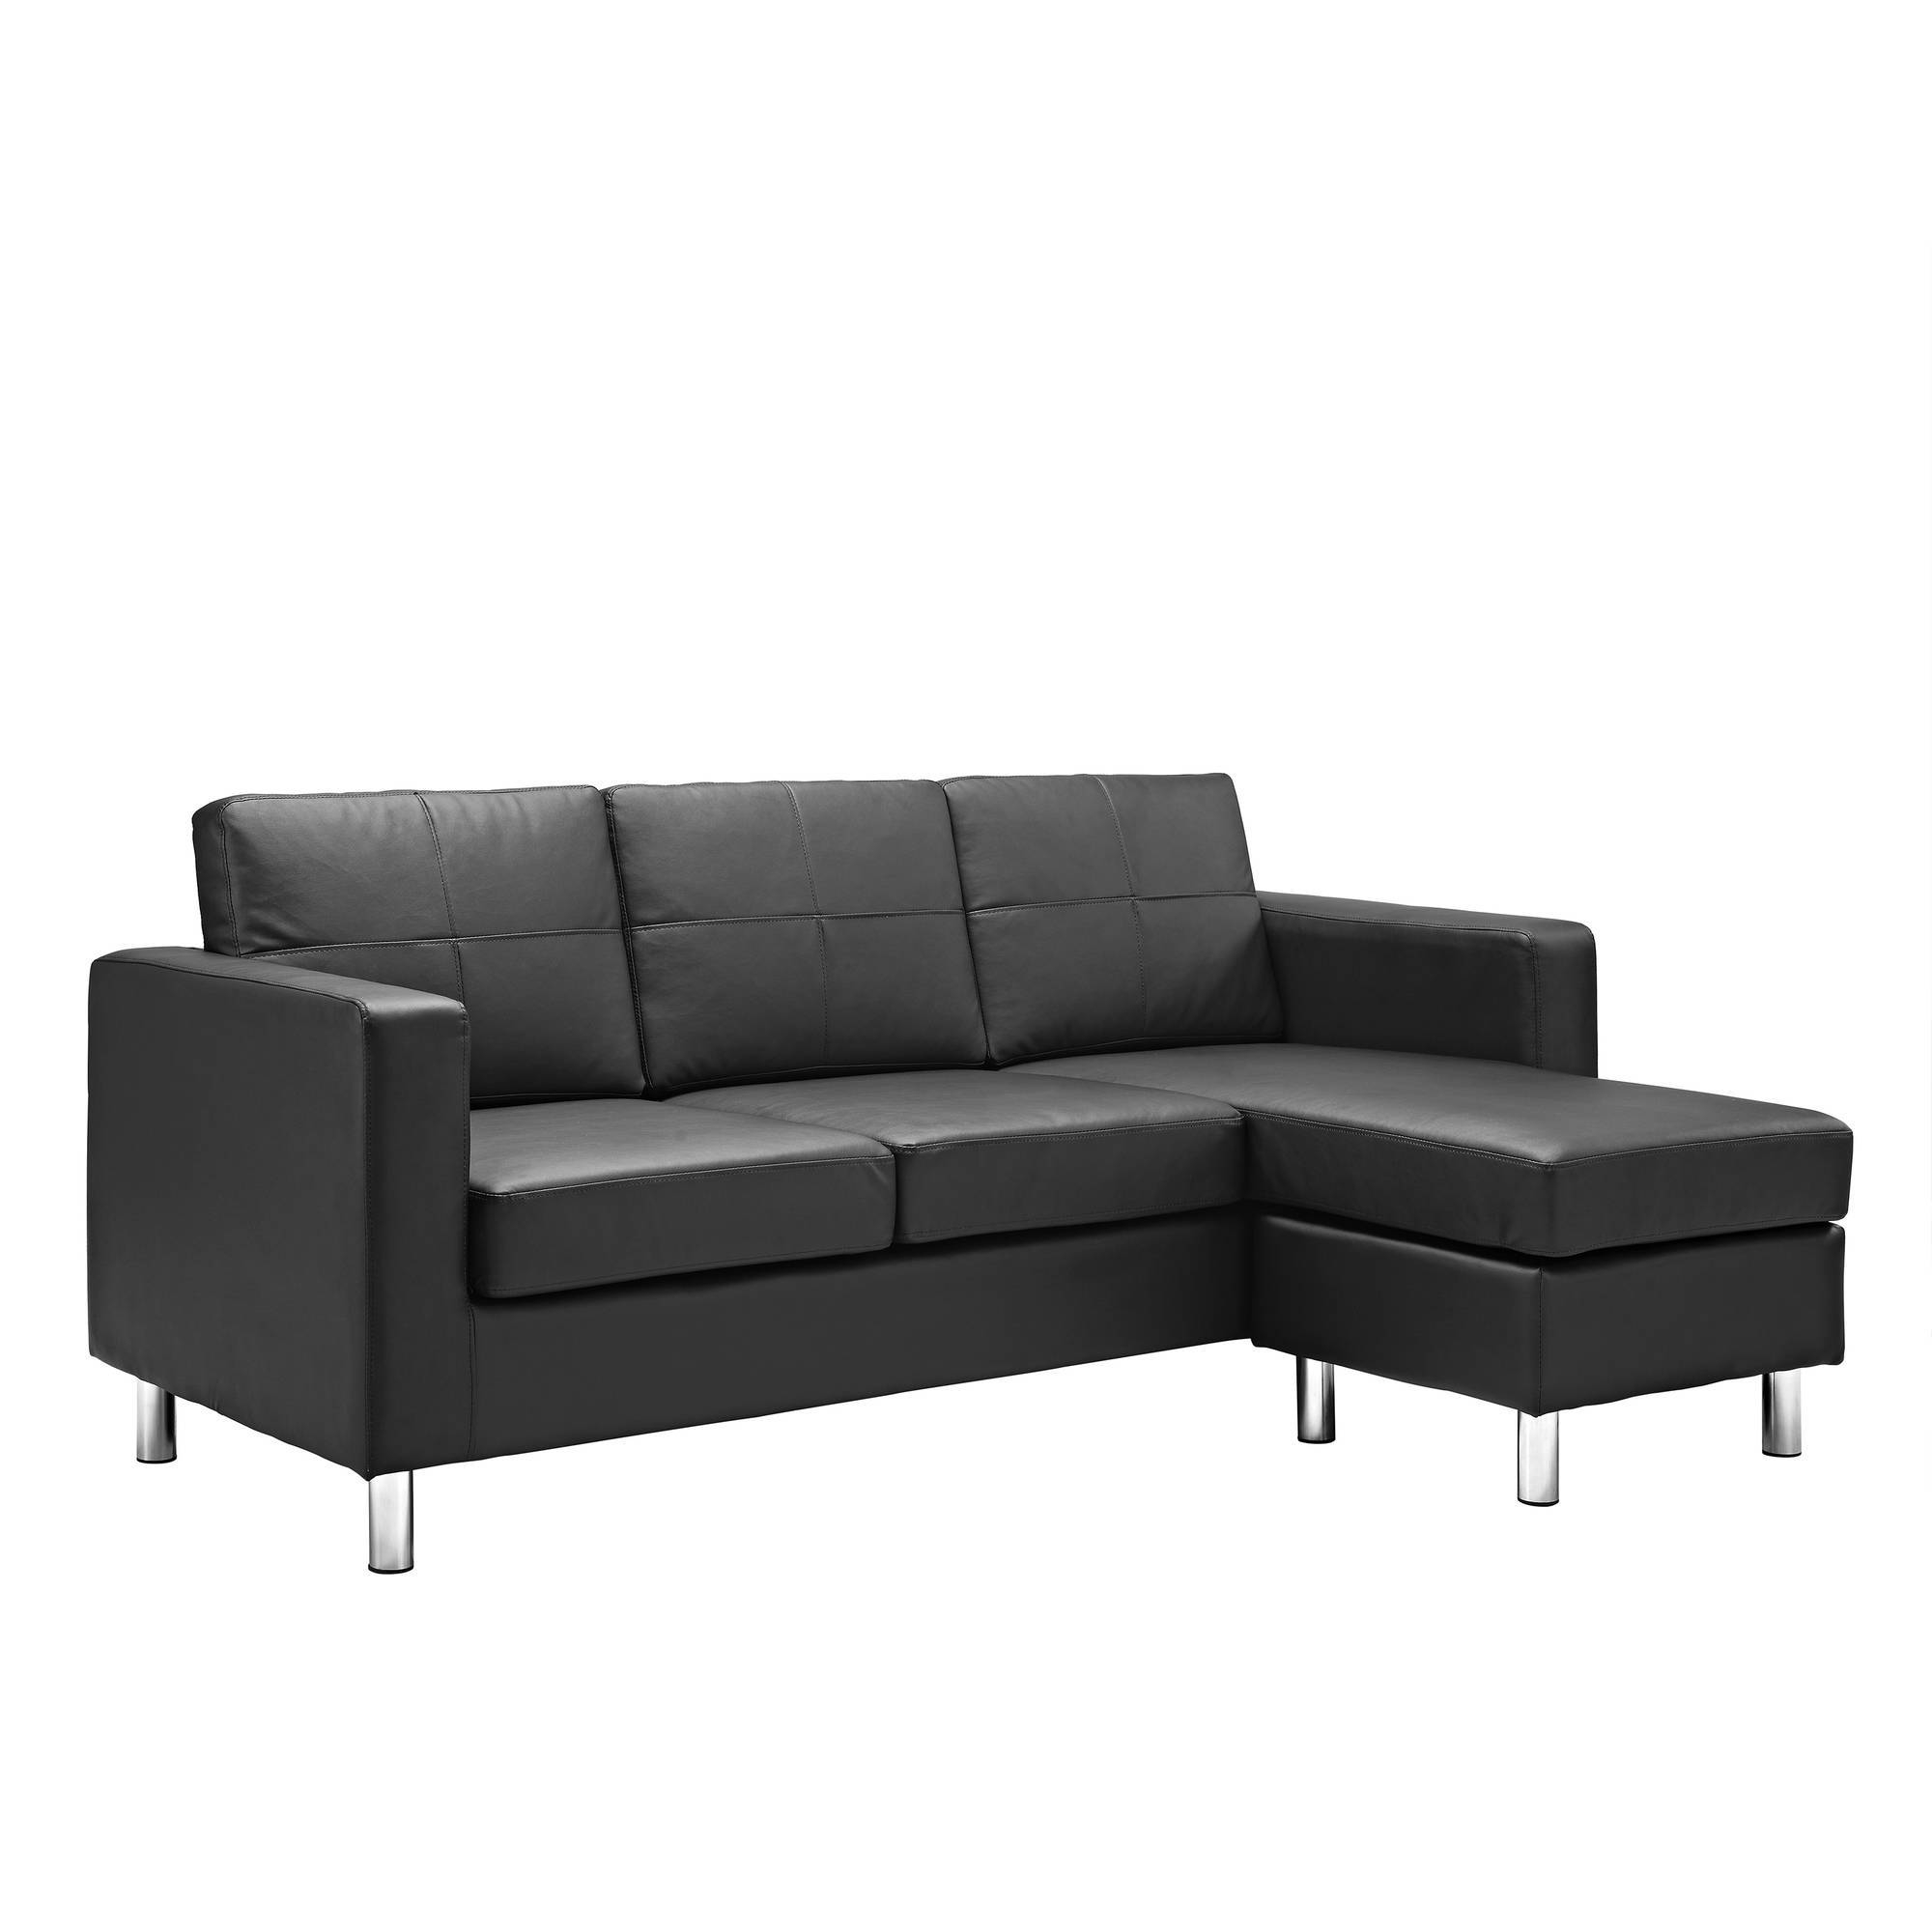 Dorel Living Small Spaces Configurable Sectional Sofa, Multiple regarding Small Sectional Sofa (Image 10 of 30)